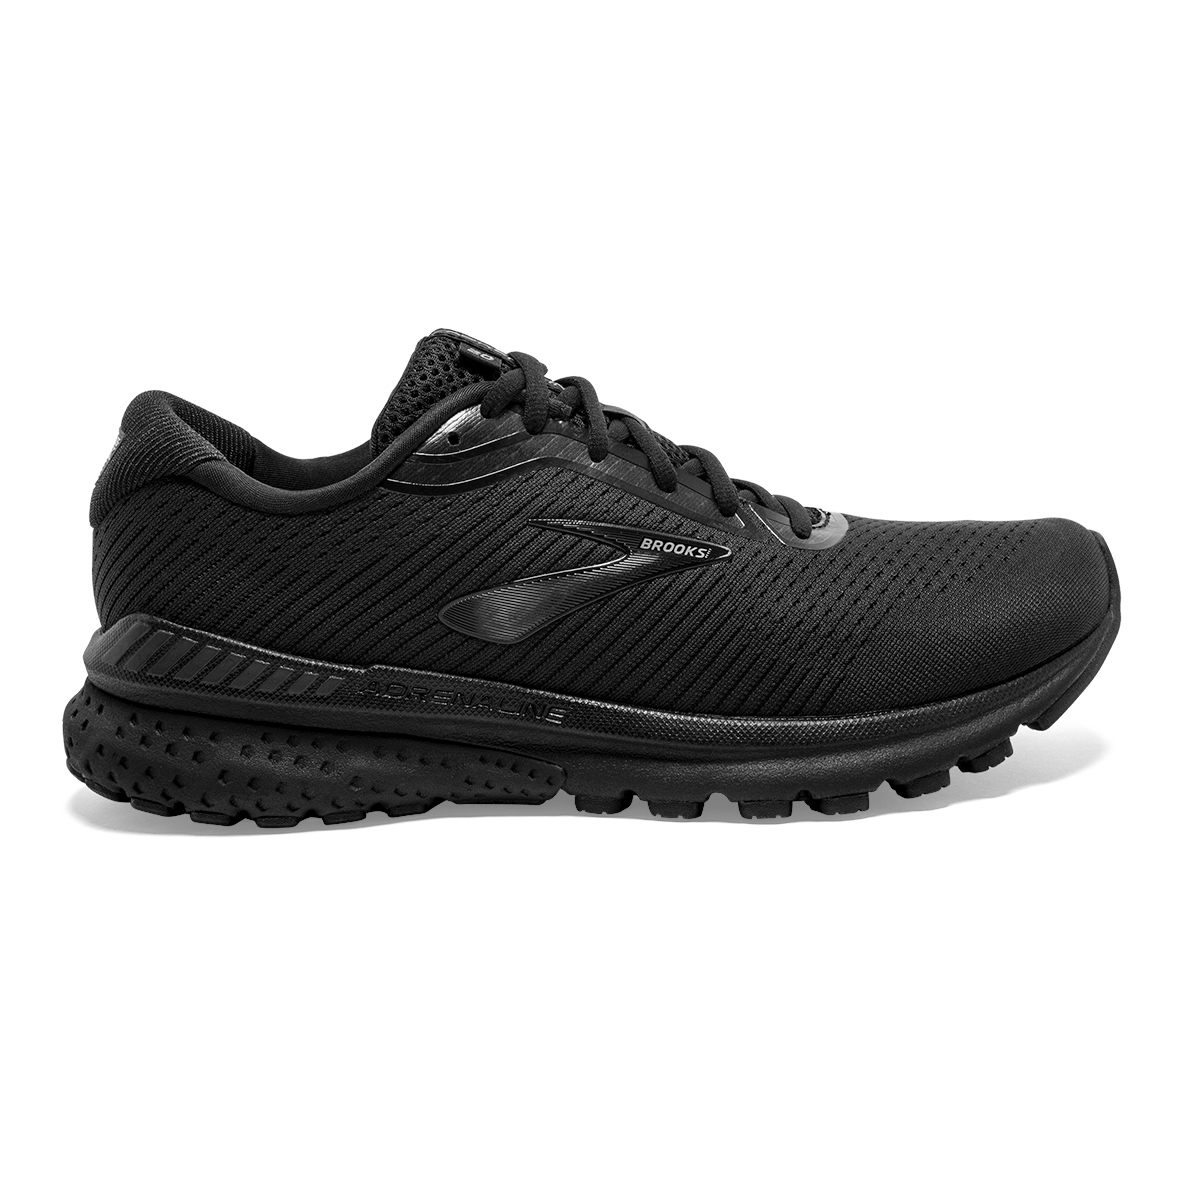 Men's Brooks Adrenaline GTS 20 Running Shoe - Color: Black/Grey (Regular Width) - Size: 15, Black/Grey, large, image 1